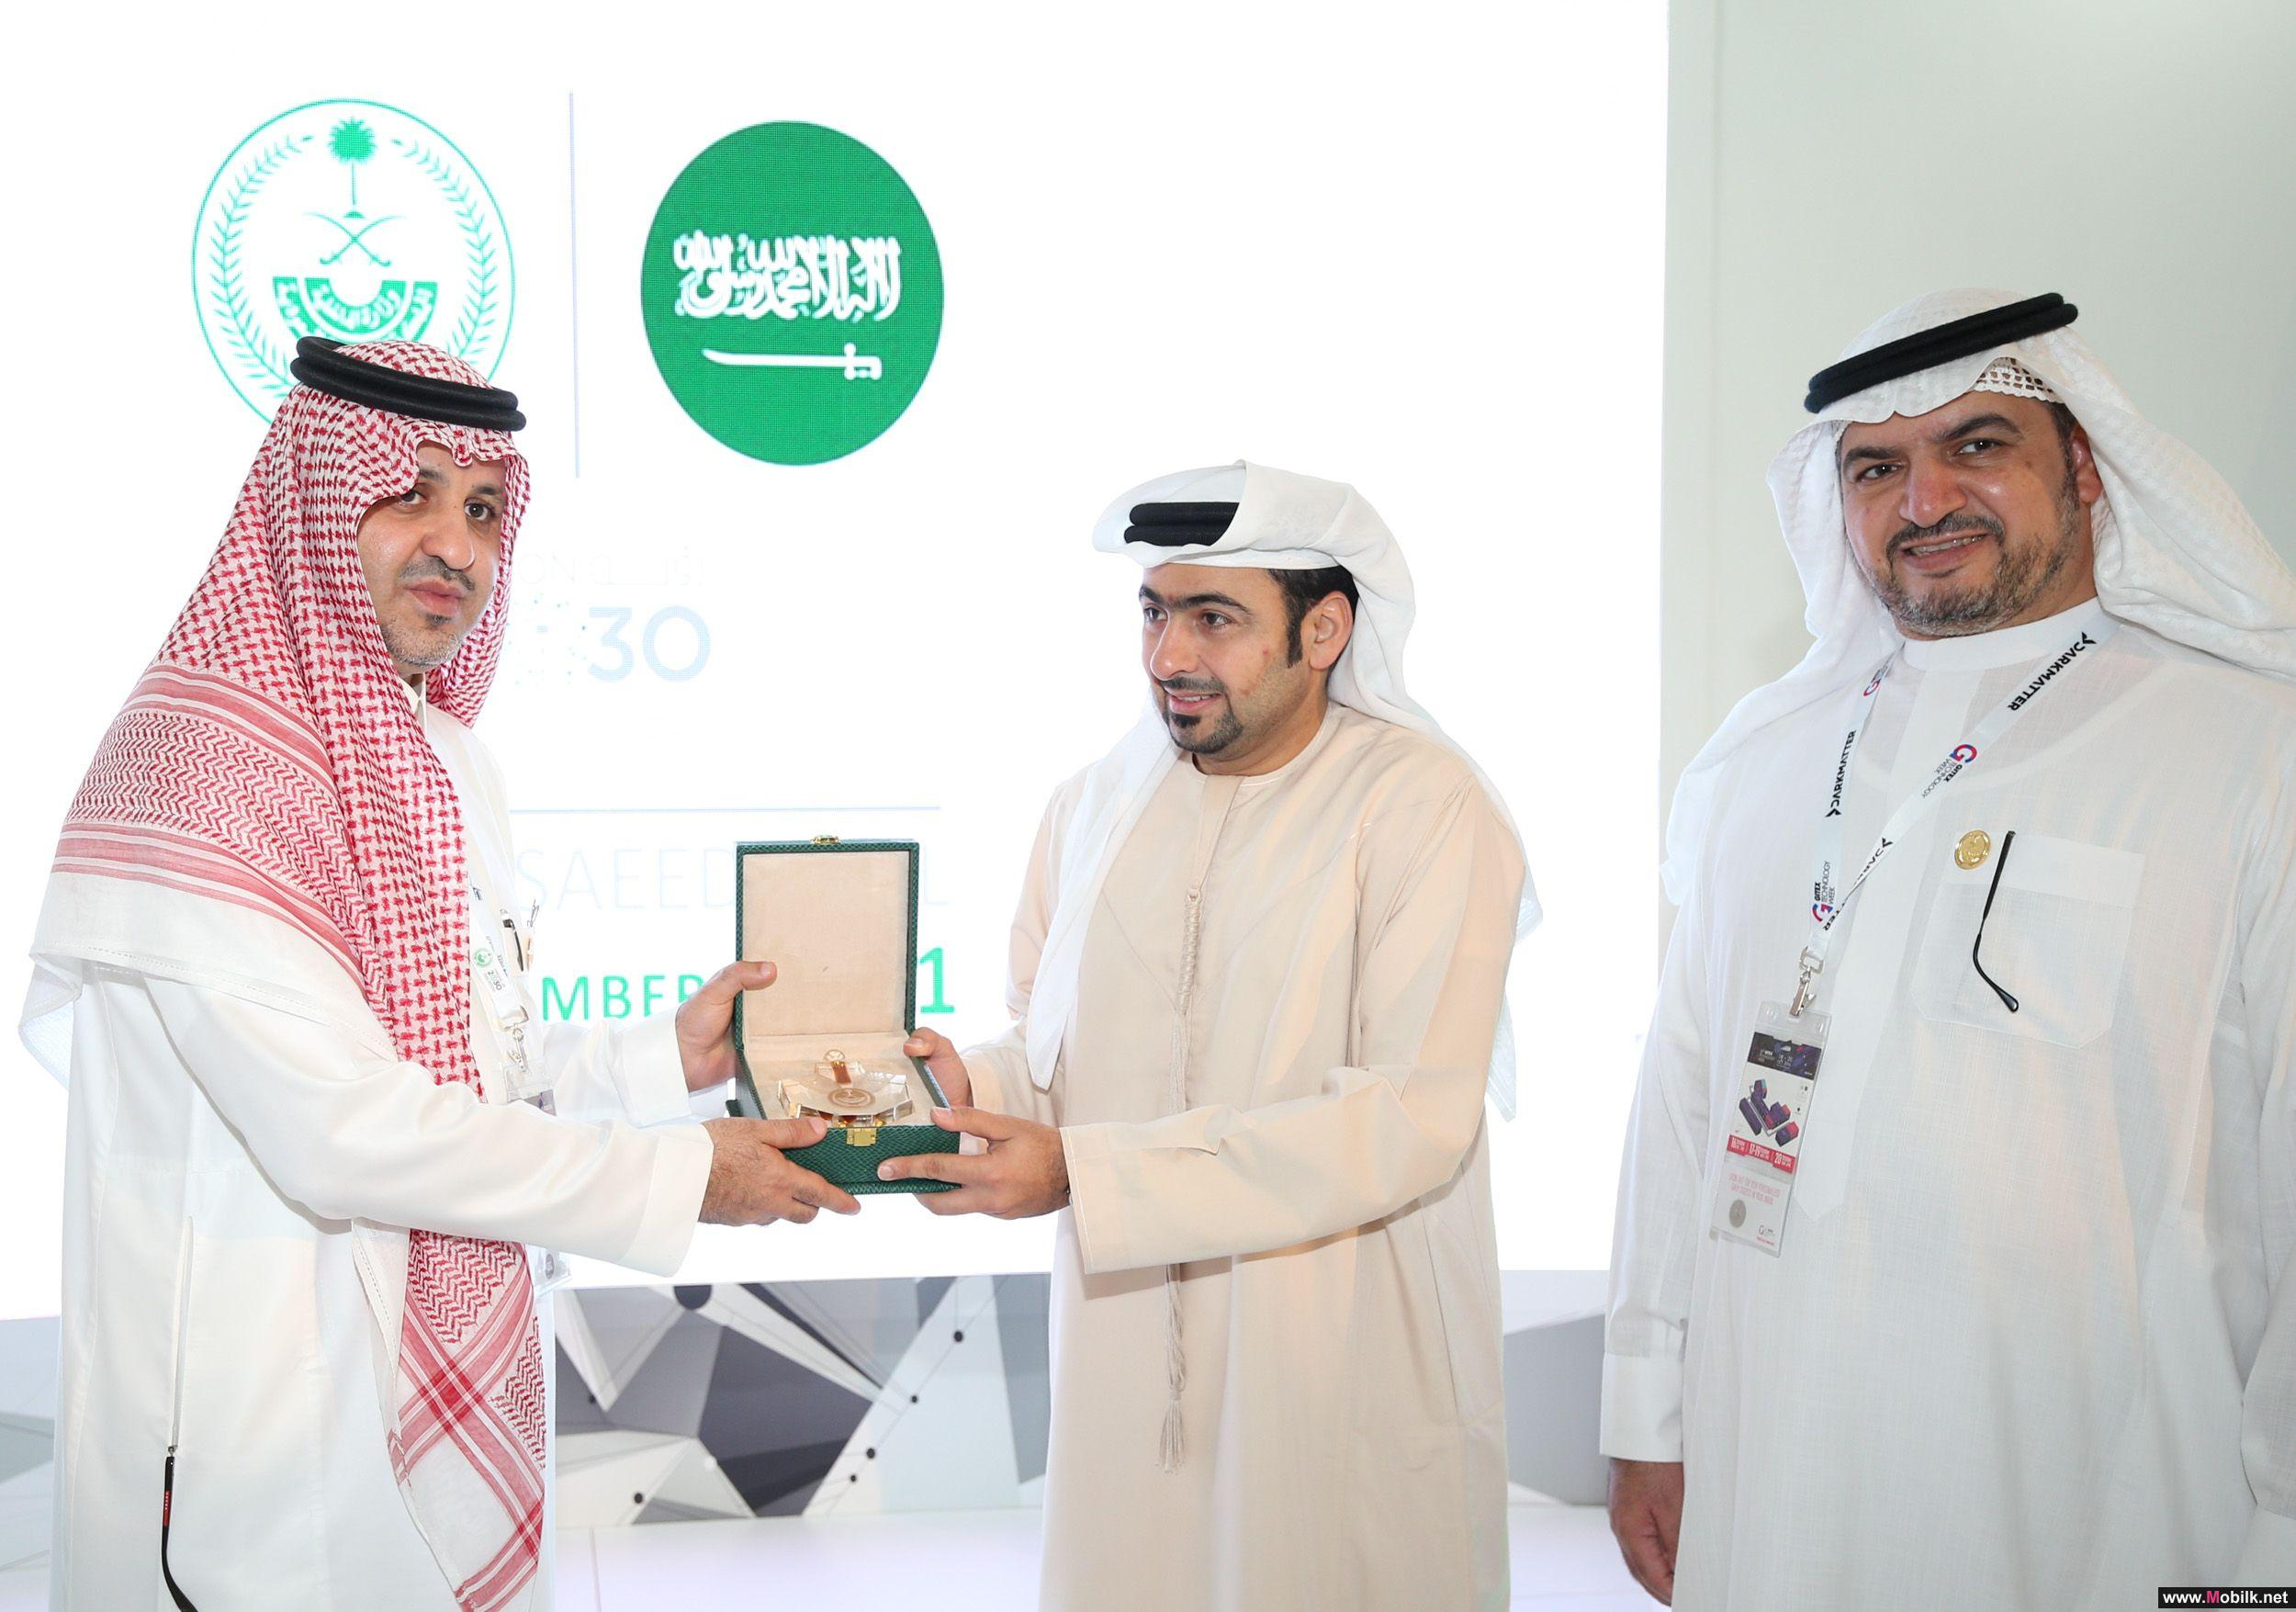 Kingdom of Saudi Arabia Recognized for its Largest-Ever Participation at GITEX Technology Week